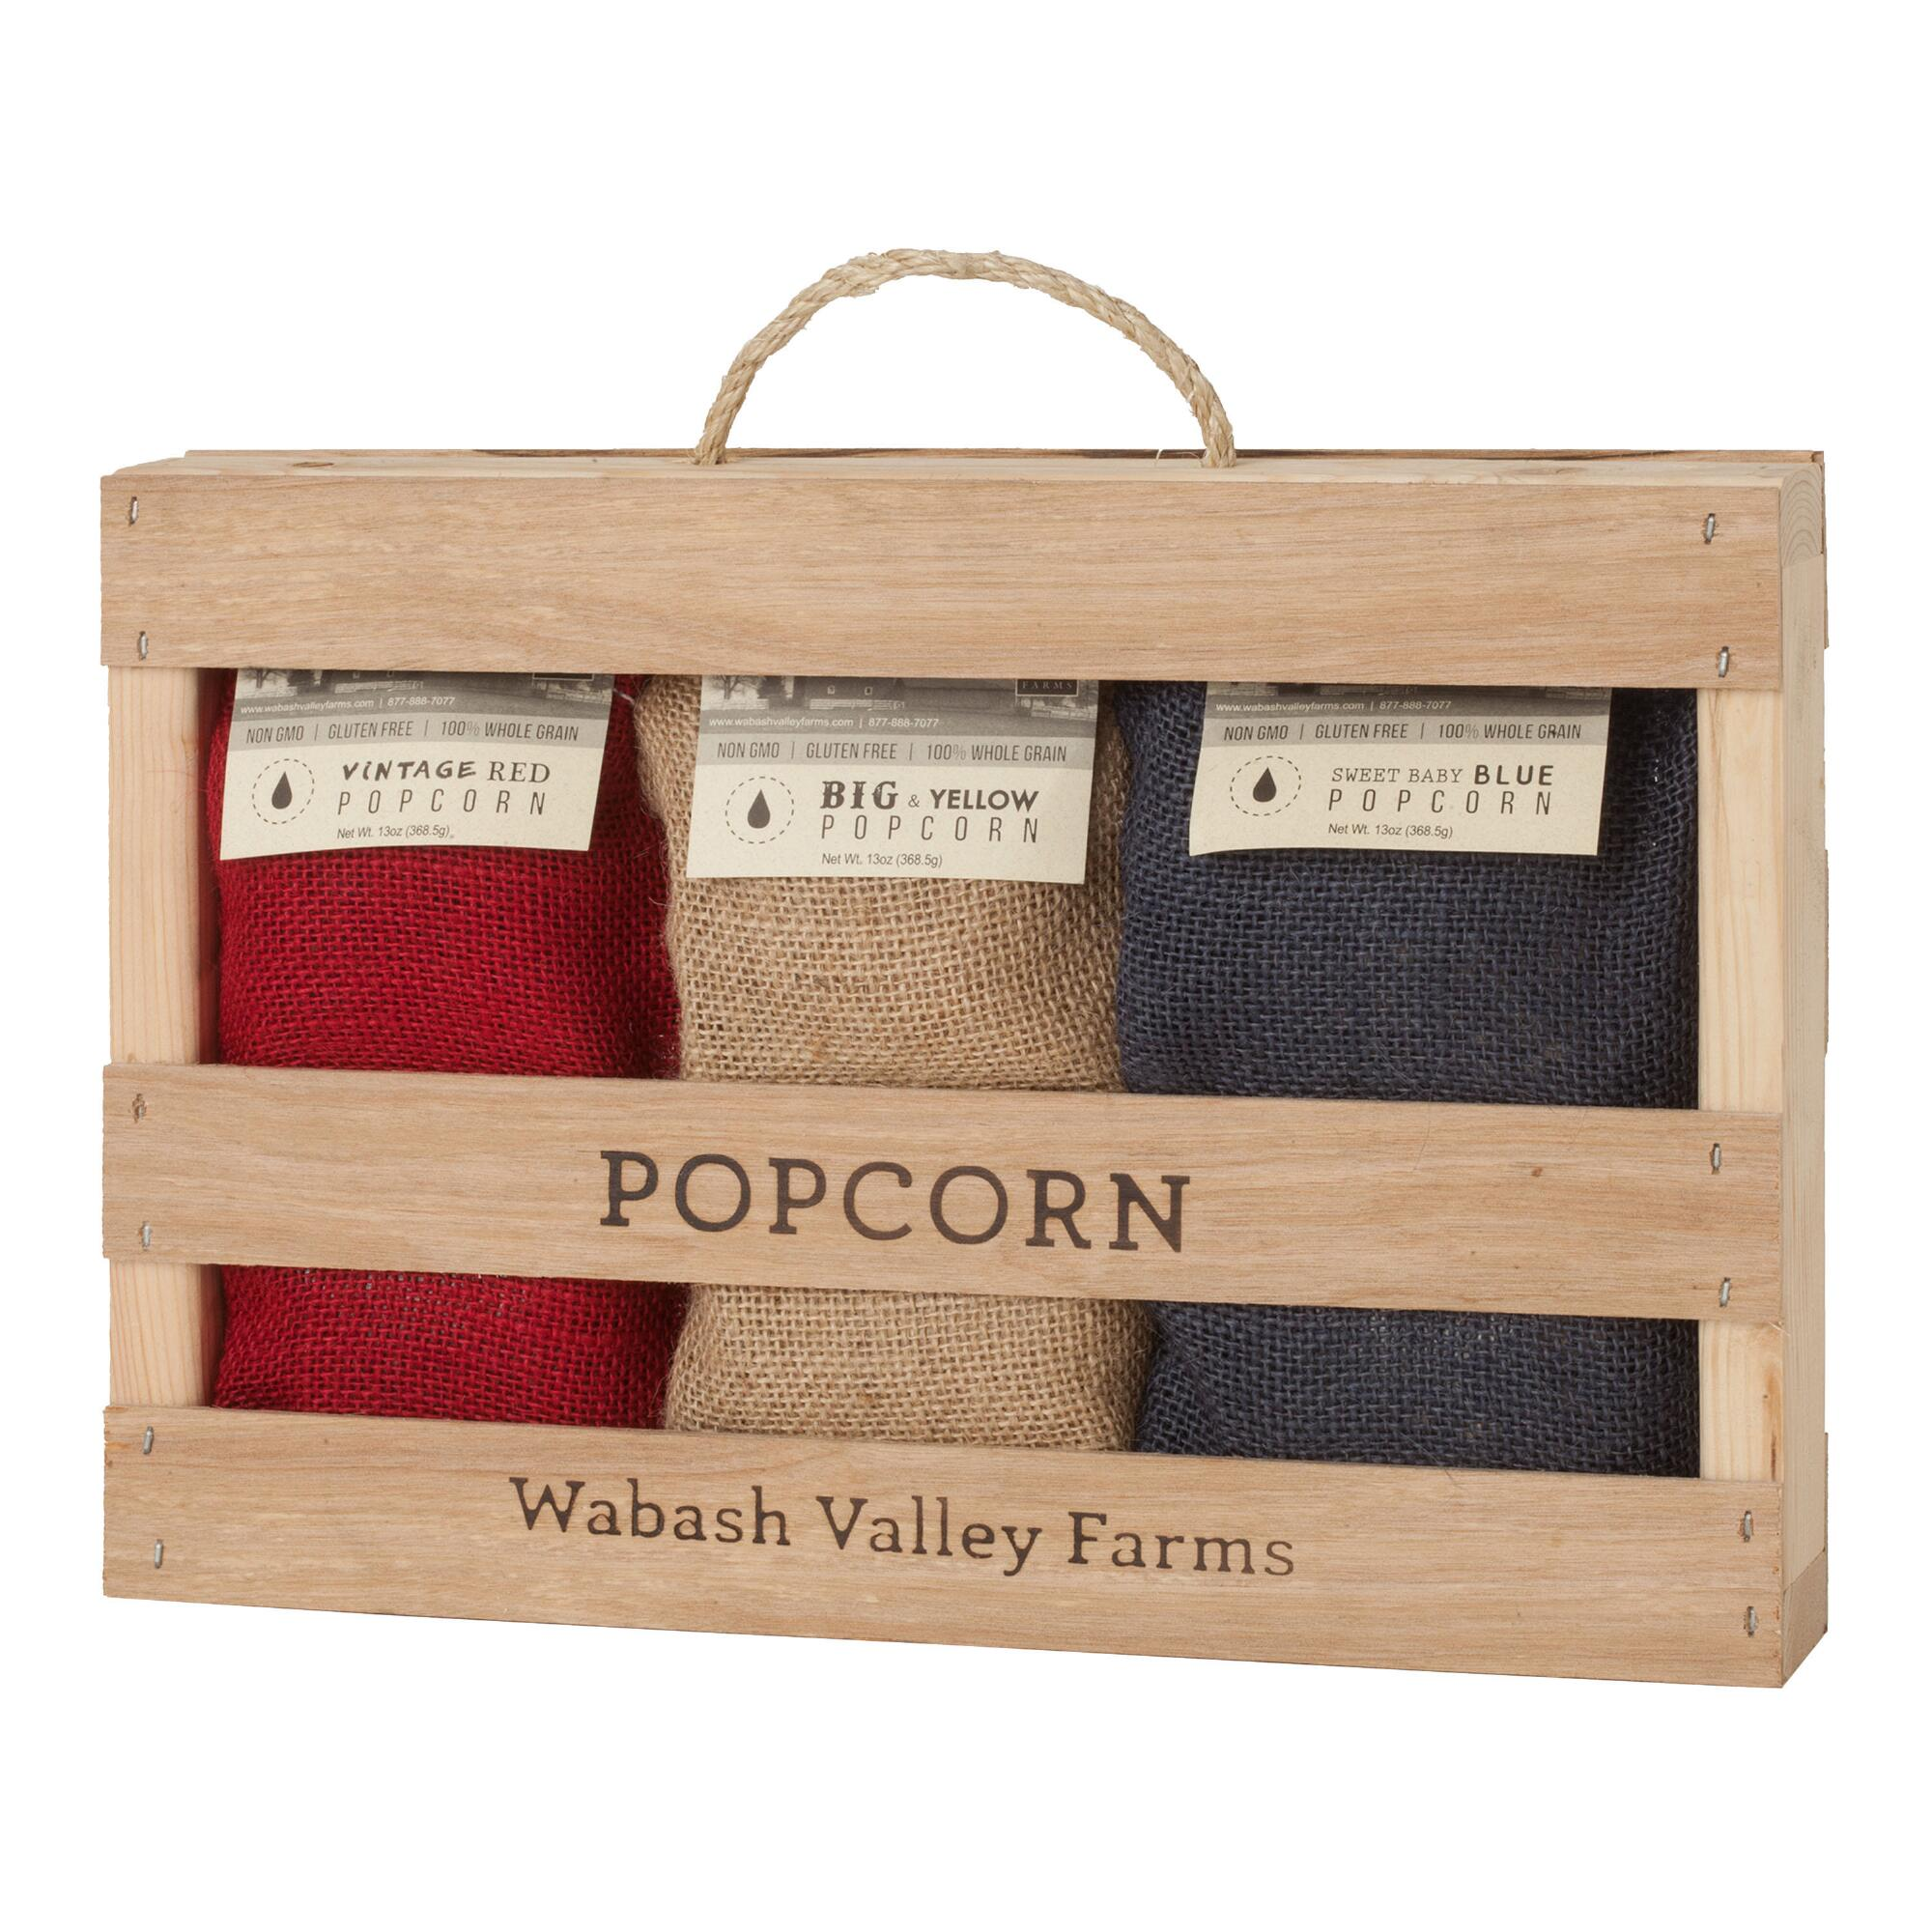 Wabash Valley Farms Popcorn Kernels 3 Piece Gift Crate $19.99